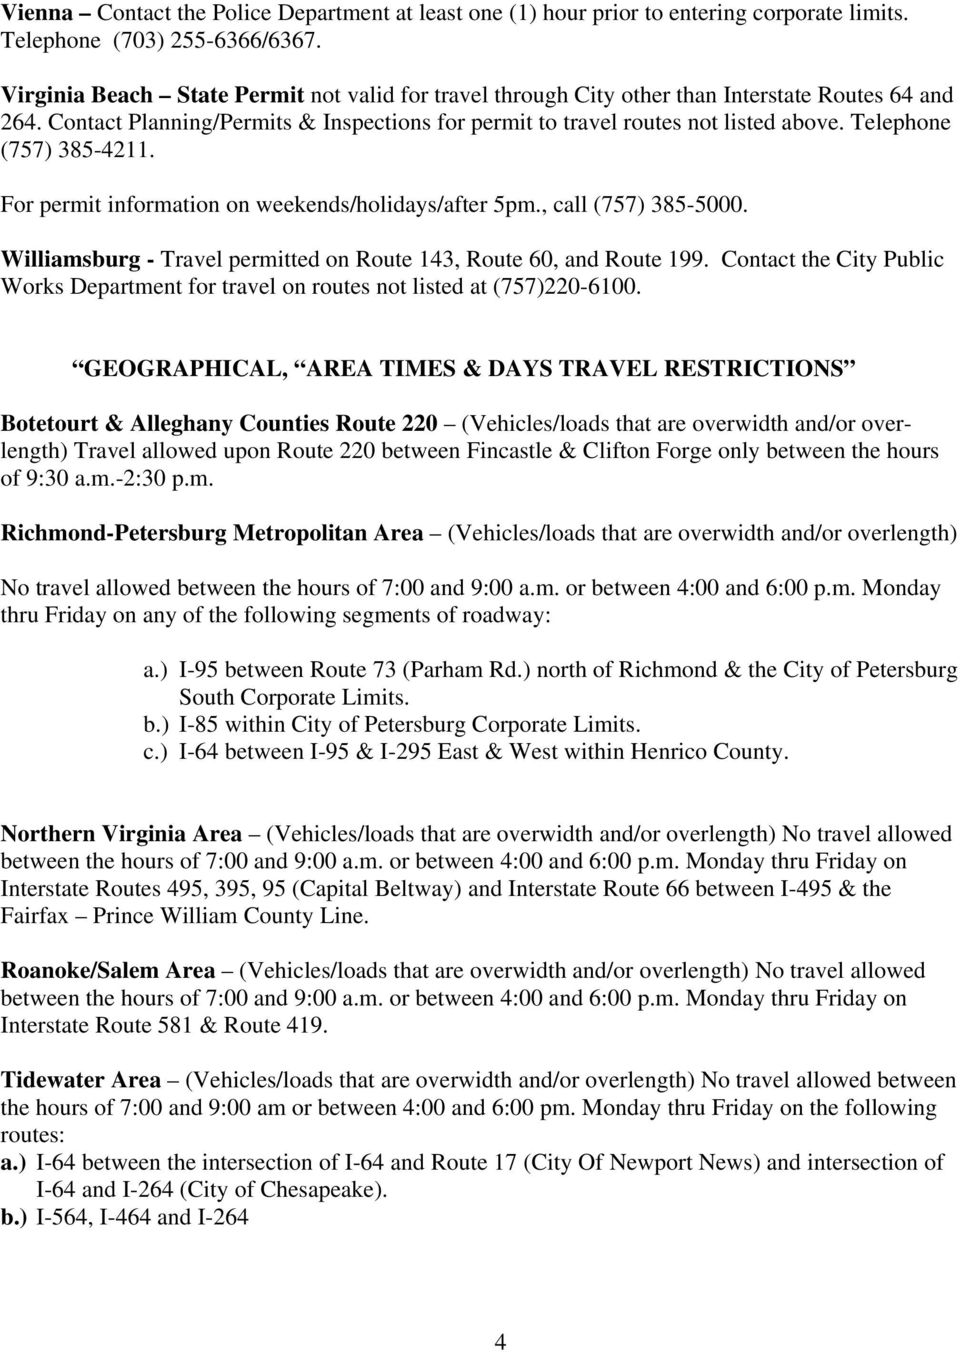 Telephone (757) 385-4211. For permit information on weekends/holidays/after 5pm., call (757) 385-5000. Williamsburg - Travel permitted on Route 143, Route 60, and Route 199.